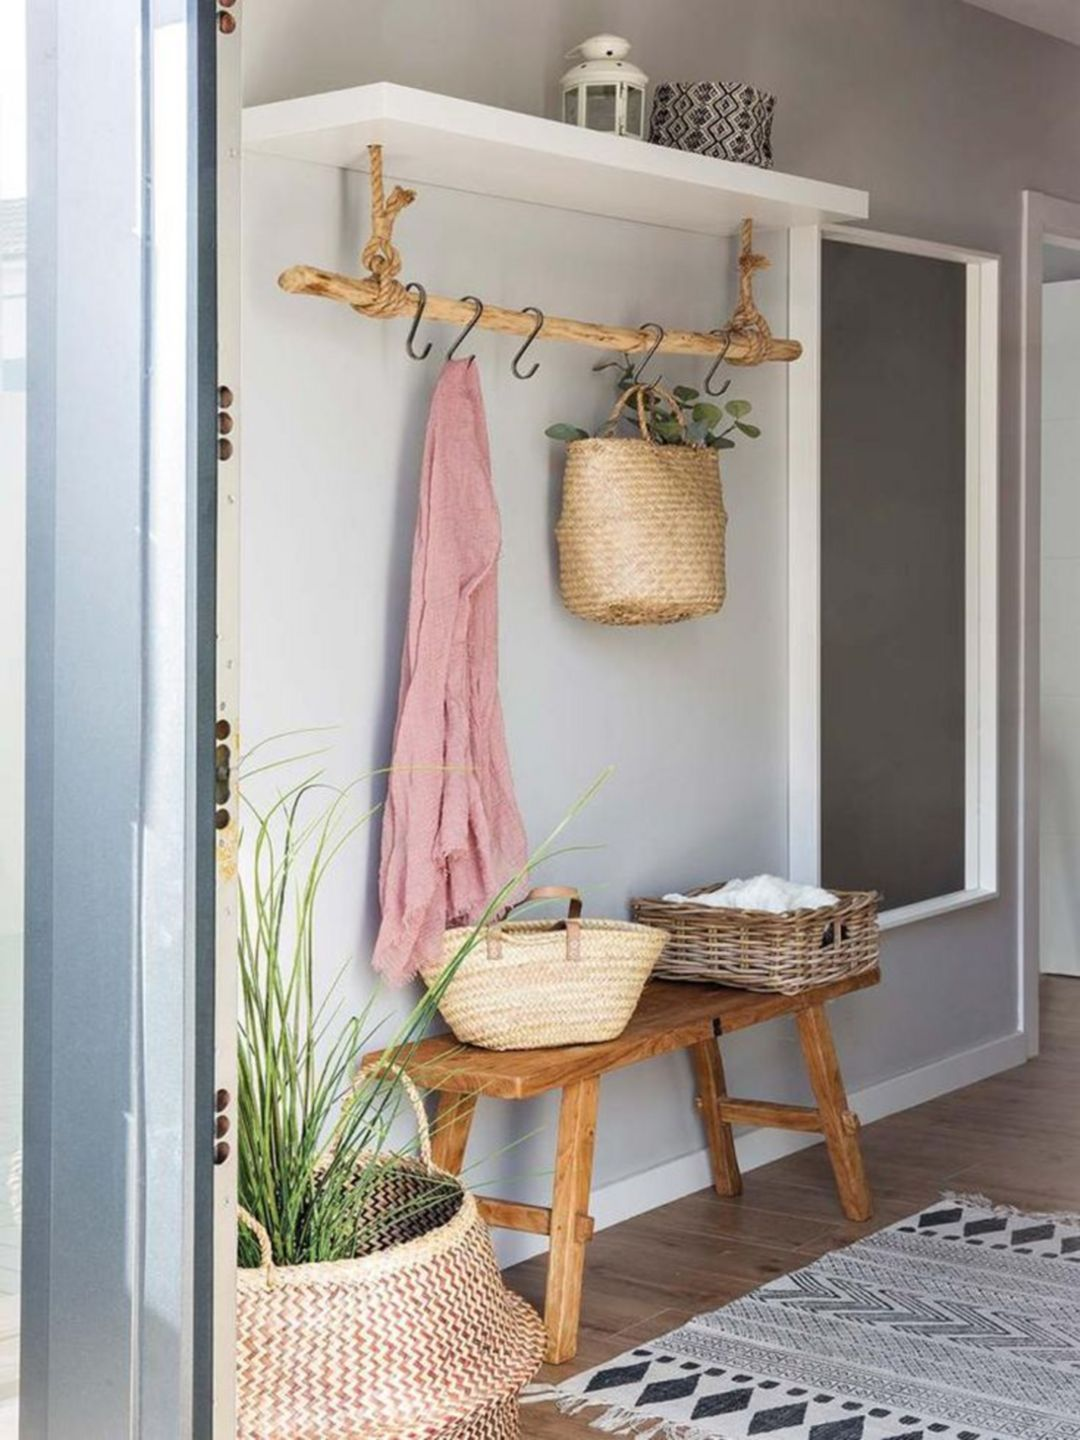 10 Fabulous Entryway Designs For Your Enchanting Home Ideas is part of  - The entryway is a space that connects the entryway and part of the house or living room  The entryway is usual